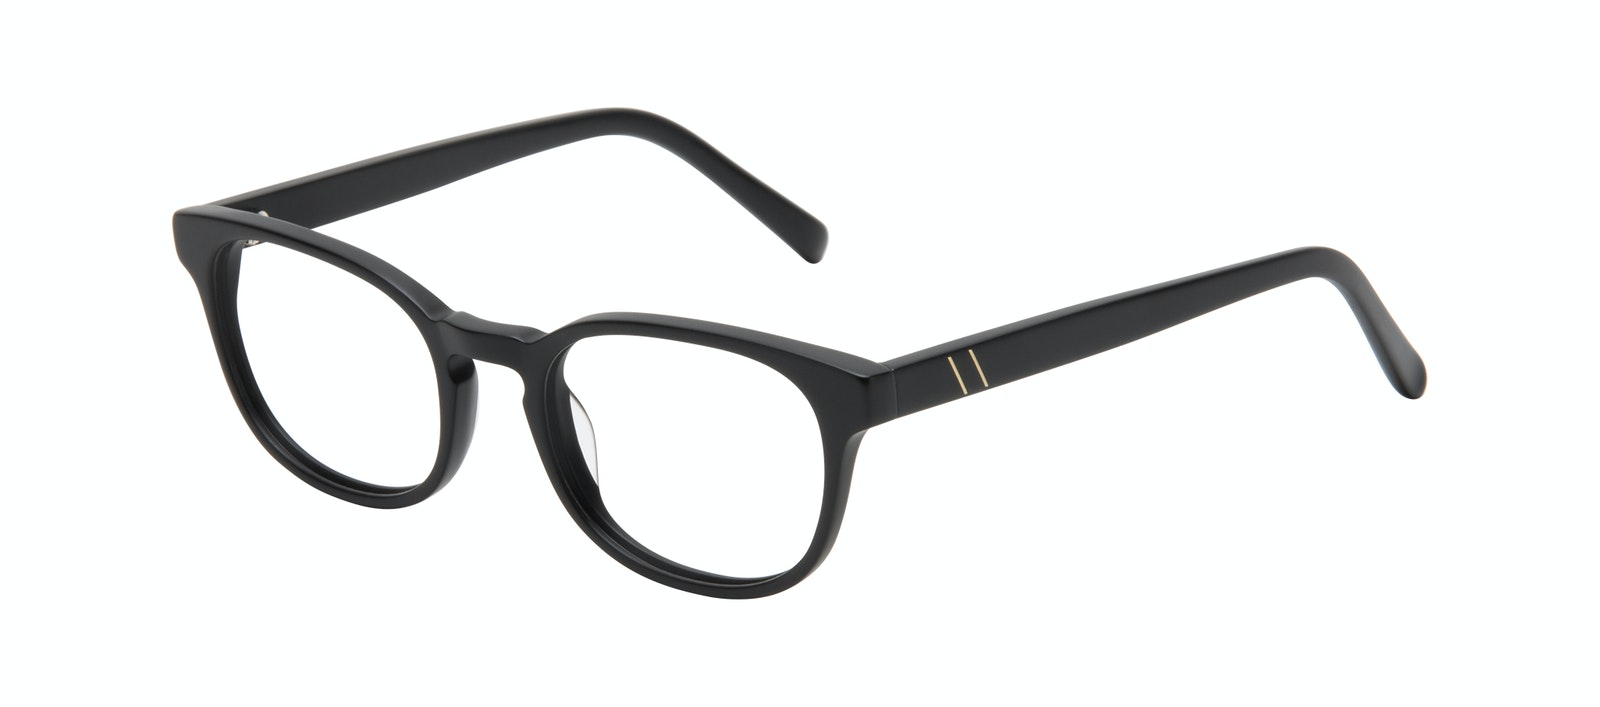 Affordable Fashion Glasses Square Eyeglasses Men Essence Black Matte Tilt